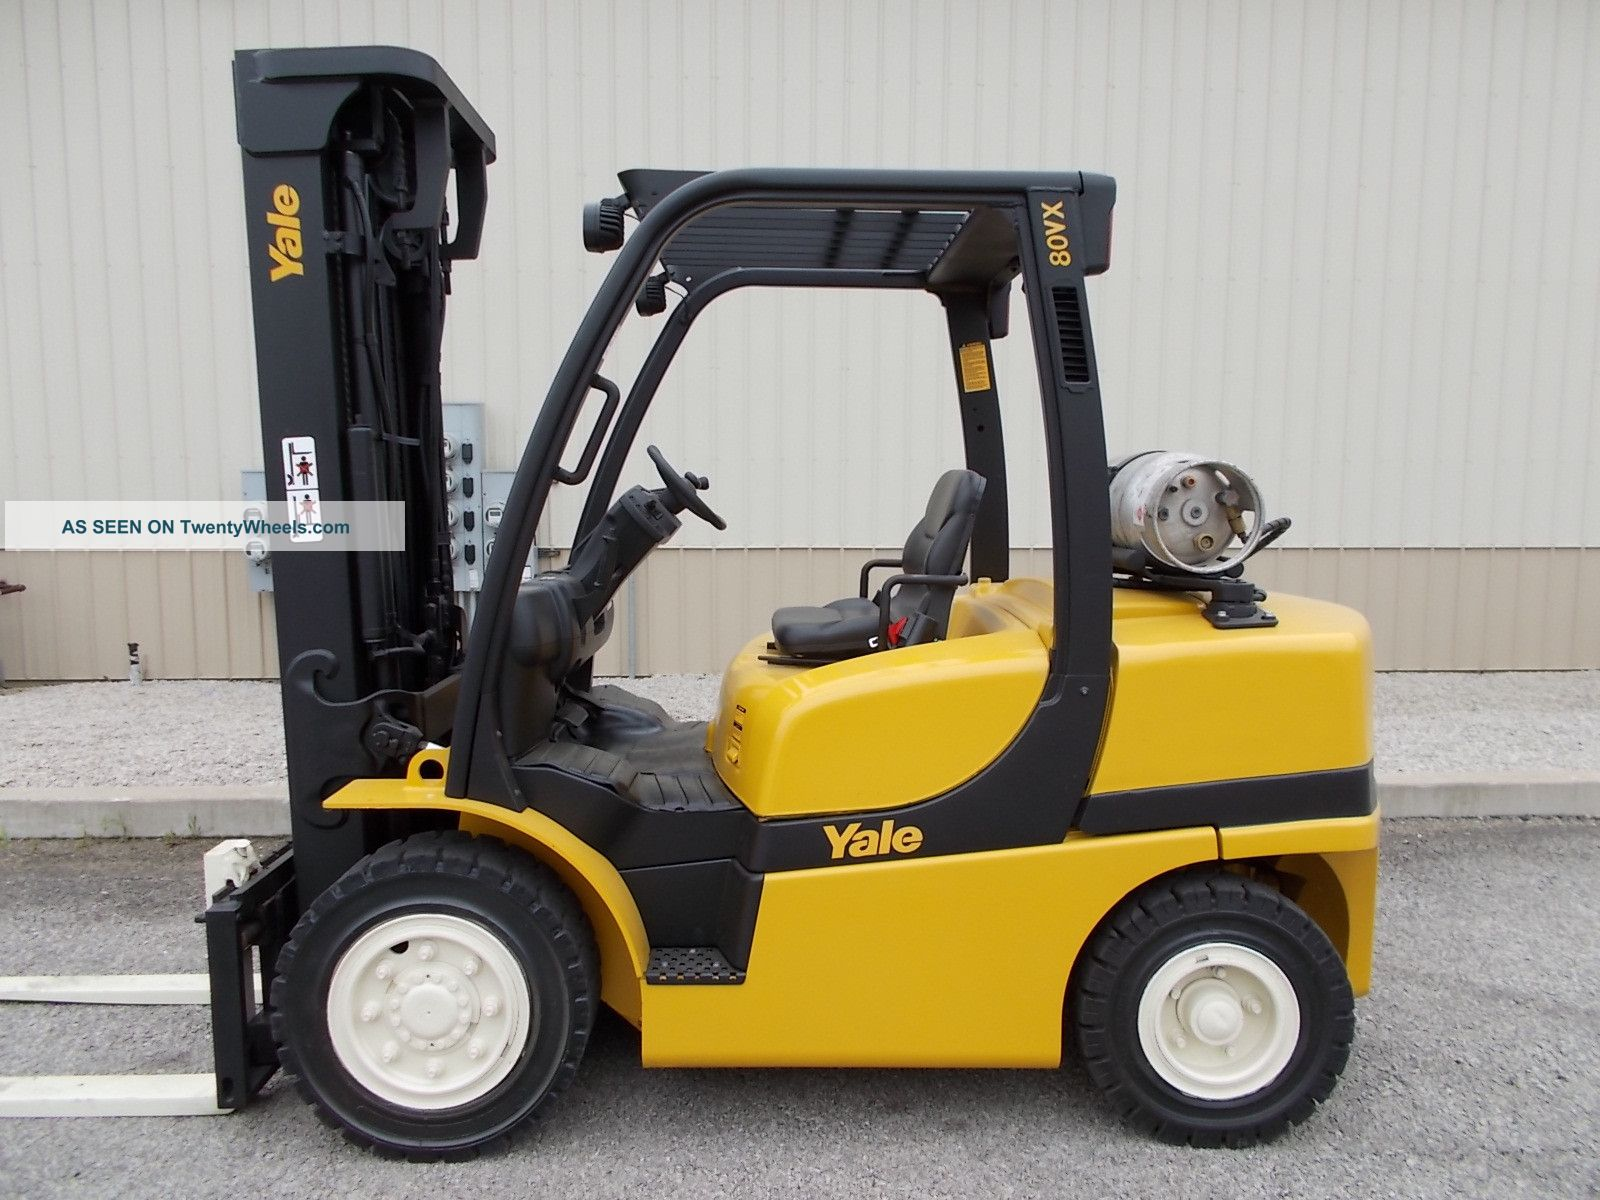 2010 Yale 8000 Lb Capacity Forklift Lift Truck Pneumatic Tire Clear View Mast Forklifts photo